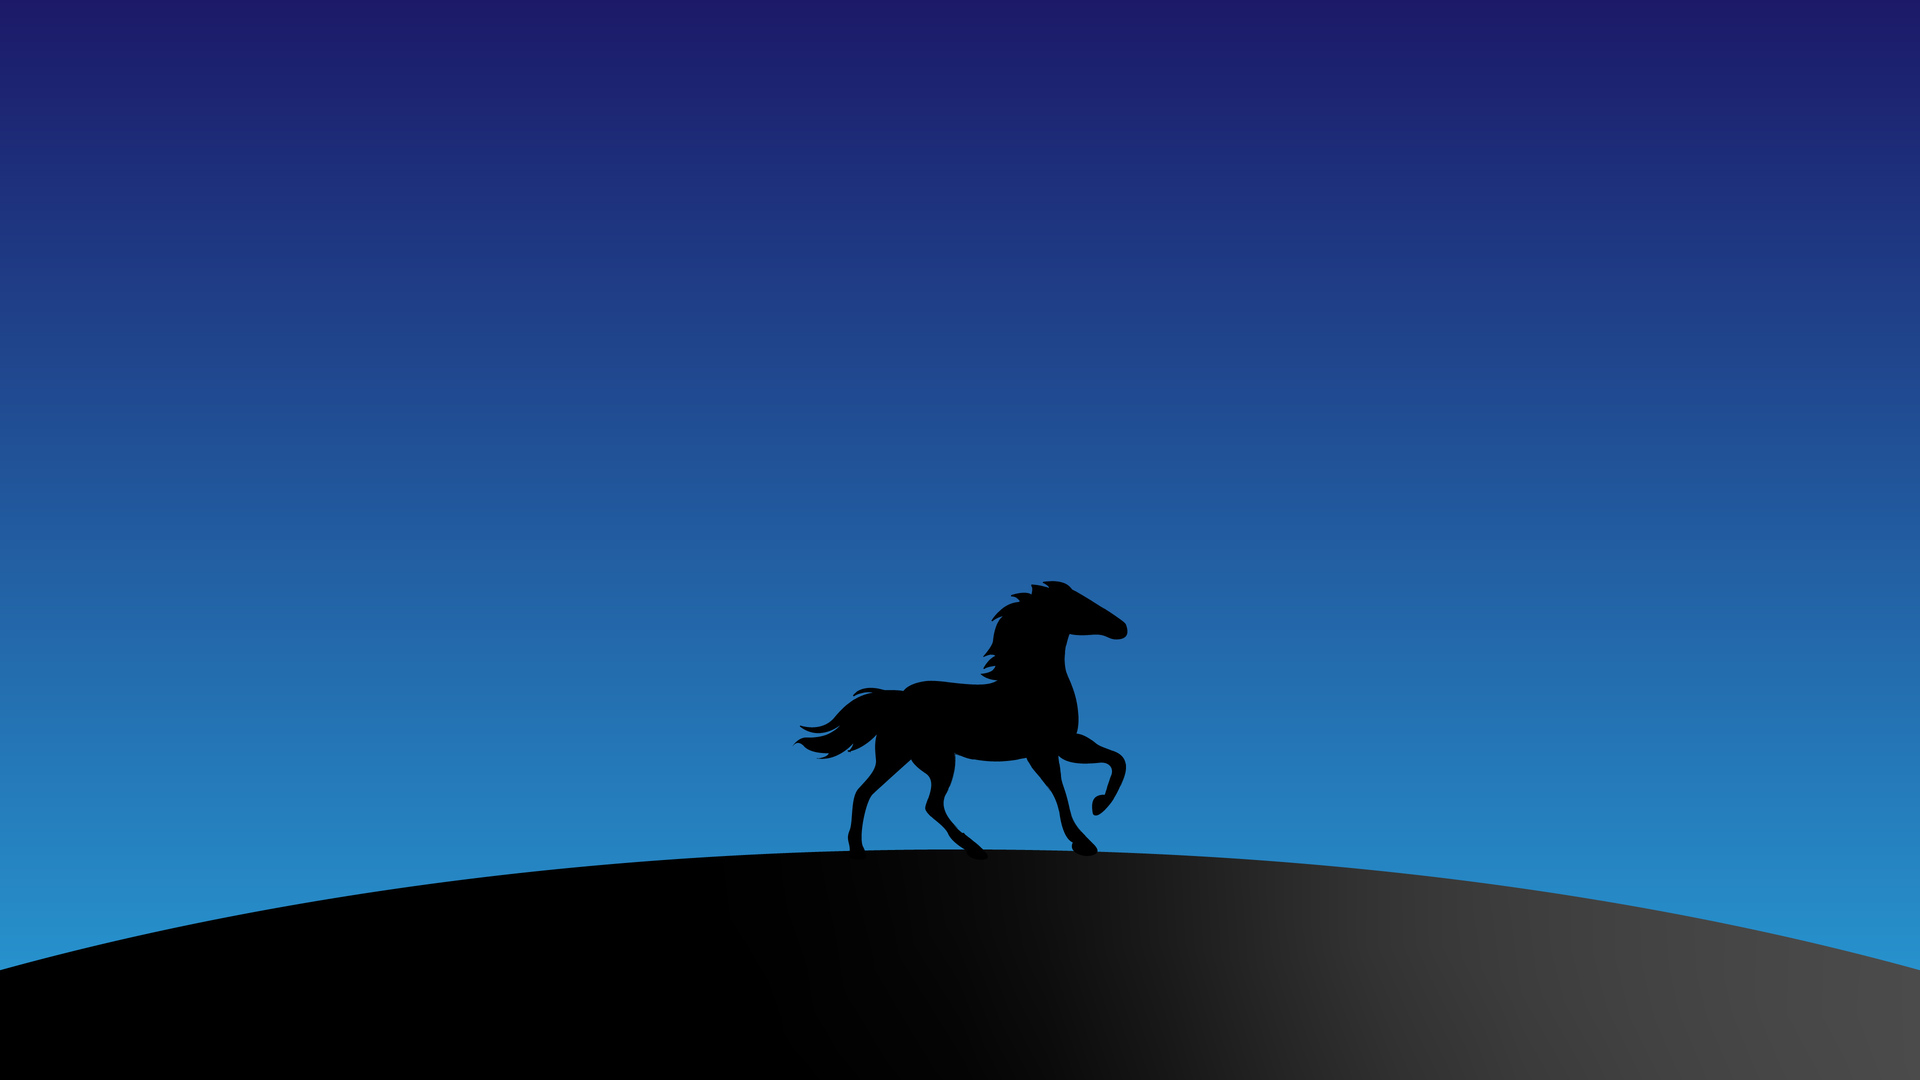 1920x1080 Horse Silhouette Minimal 4k Laptop Full Hd 1080p Hd 4k Wallpapers Images Backgrounds Photos And Pictures